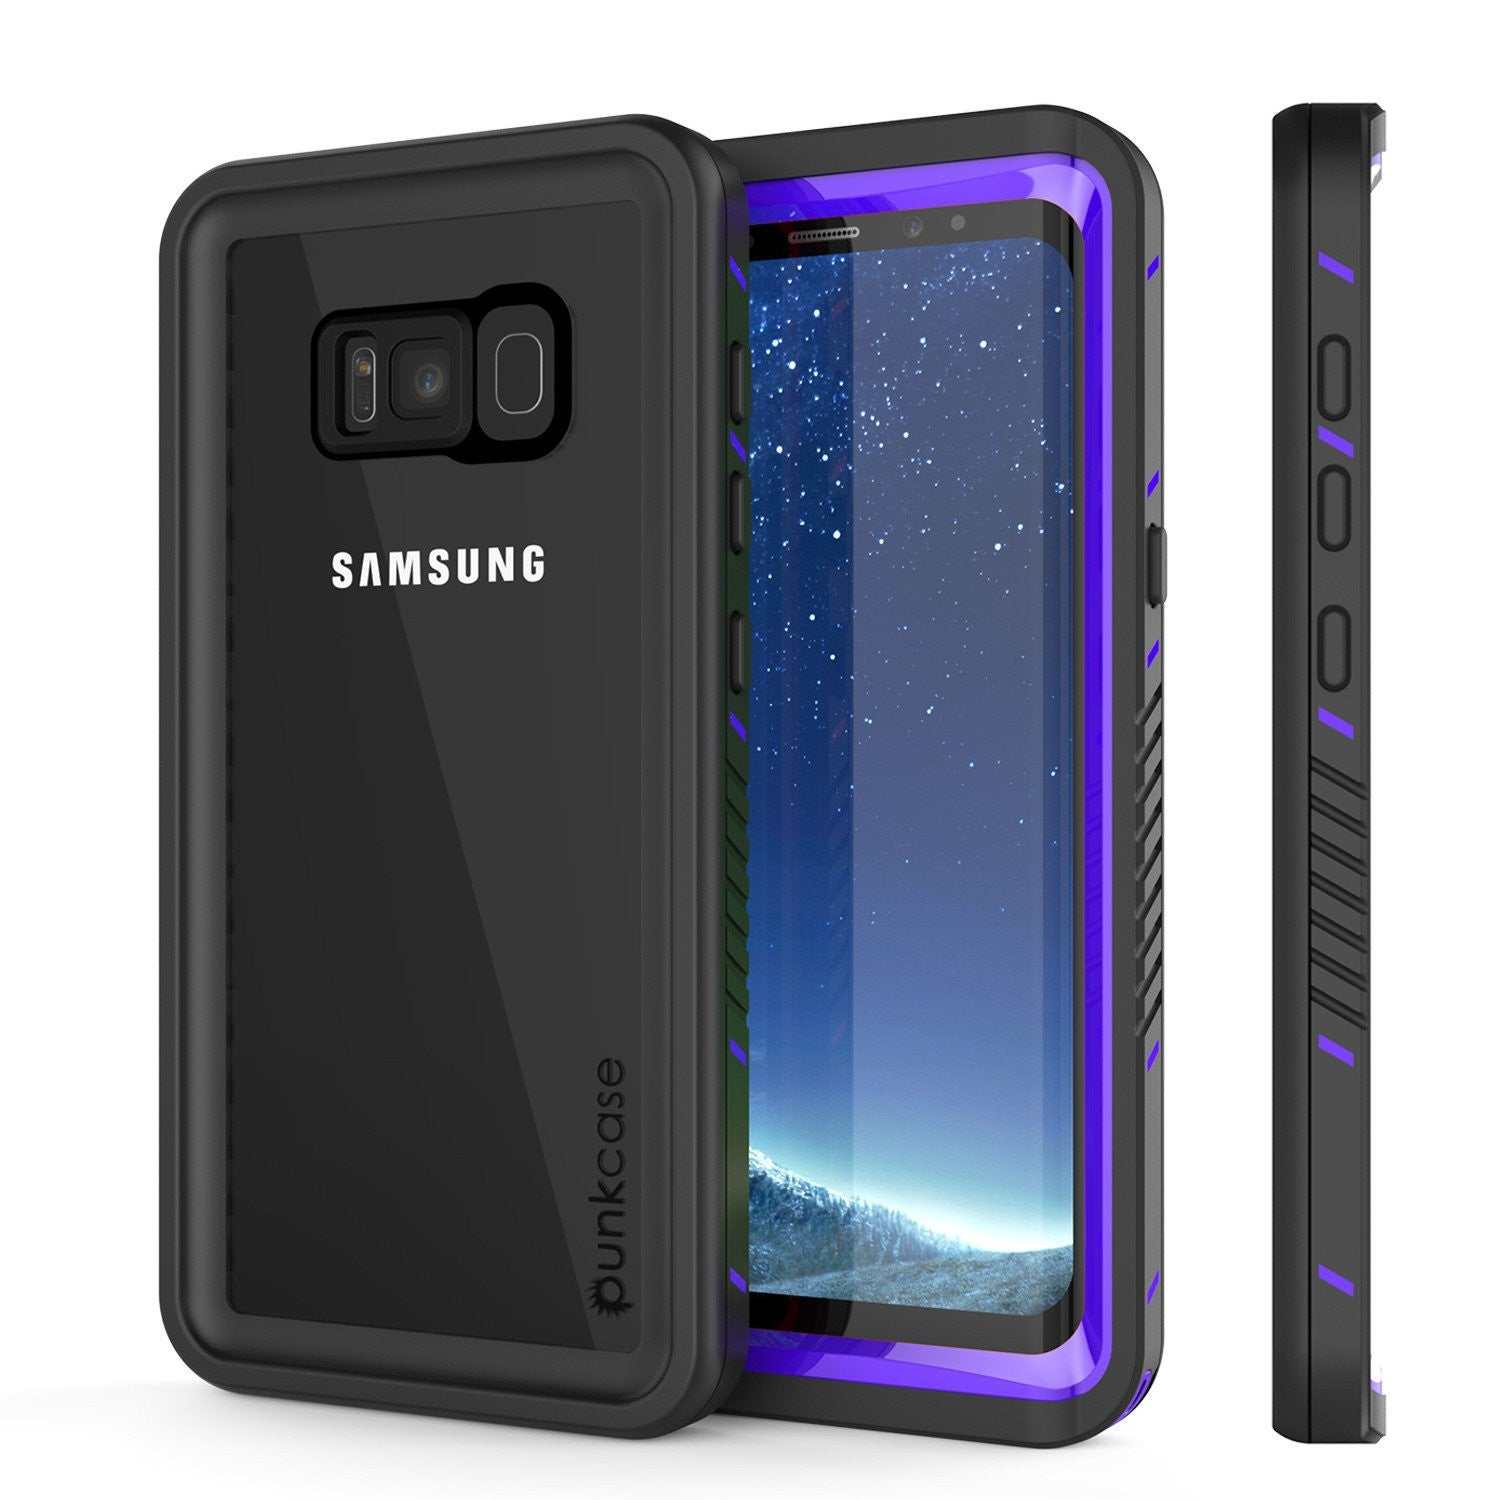 Galaxy S8 Waterproof Case, Punkcase [Extreme Series] [Slim Fit] [IP68 Certified] [Shockproof] [Snowproof] [Dirproof] Armor Cover W/ Built In Screen Protector for Samsung Galaxy S8 [Purple]